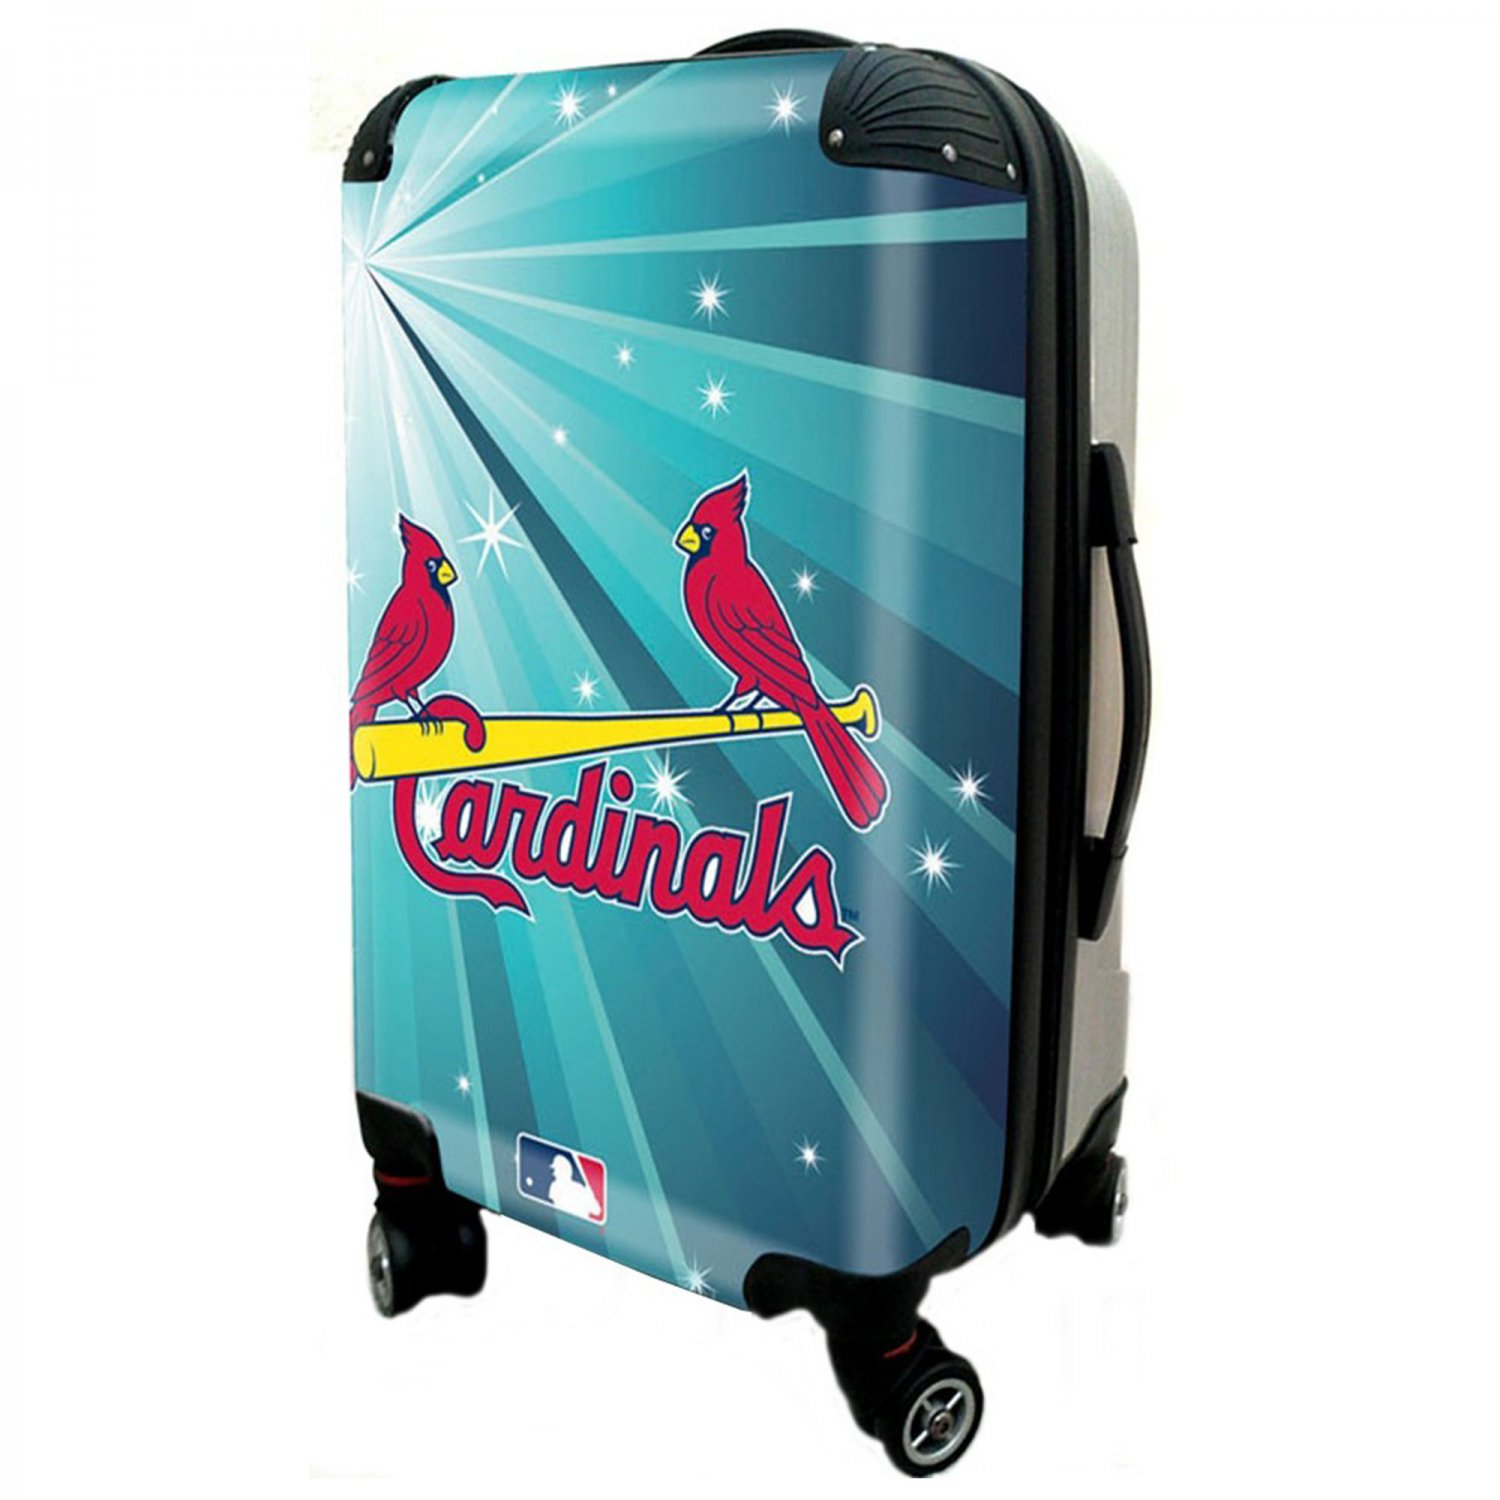 "St Louis Cardinals, 21"" Clear Poly Carry-On Luggage by Kaybull #STL9"